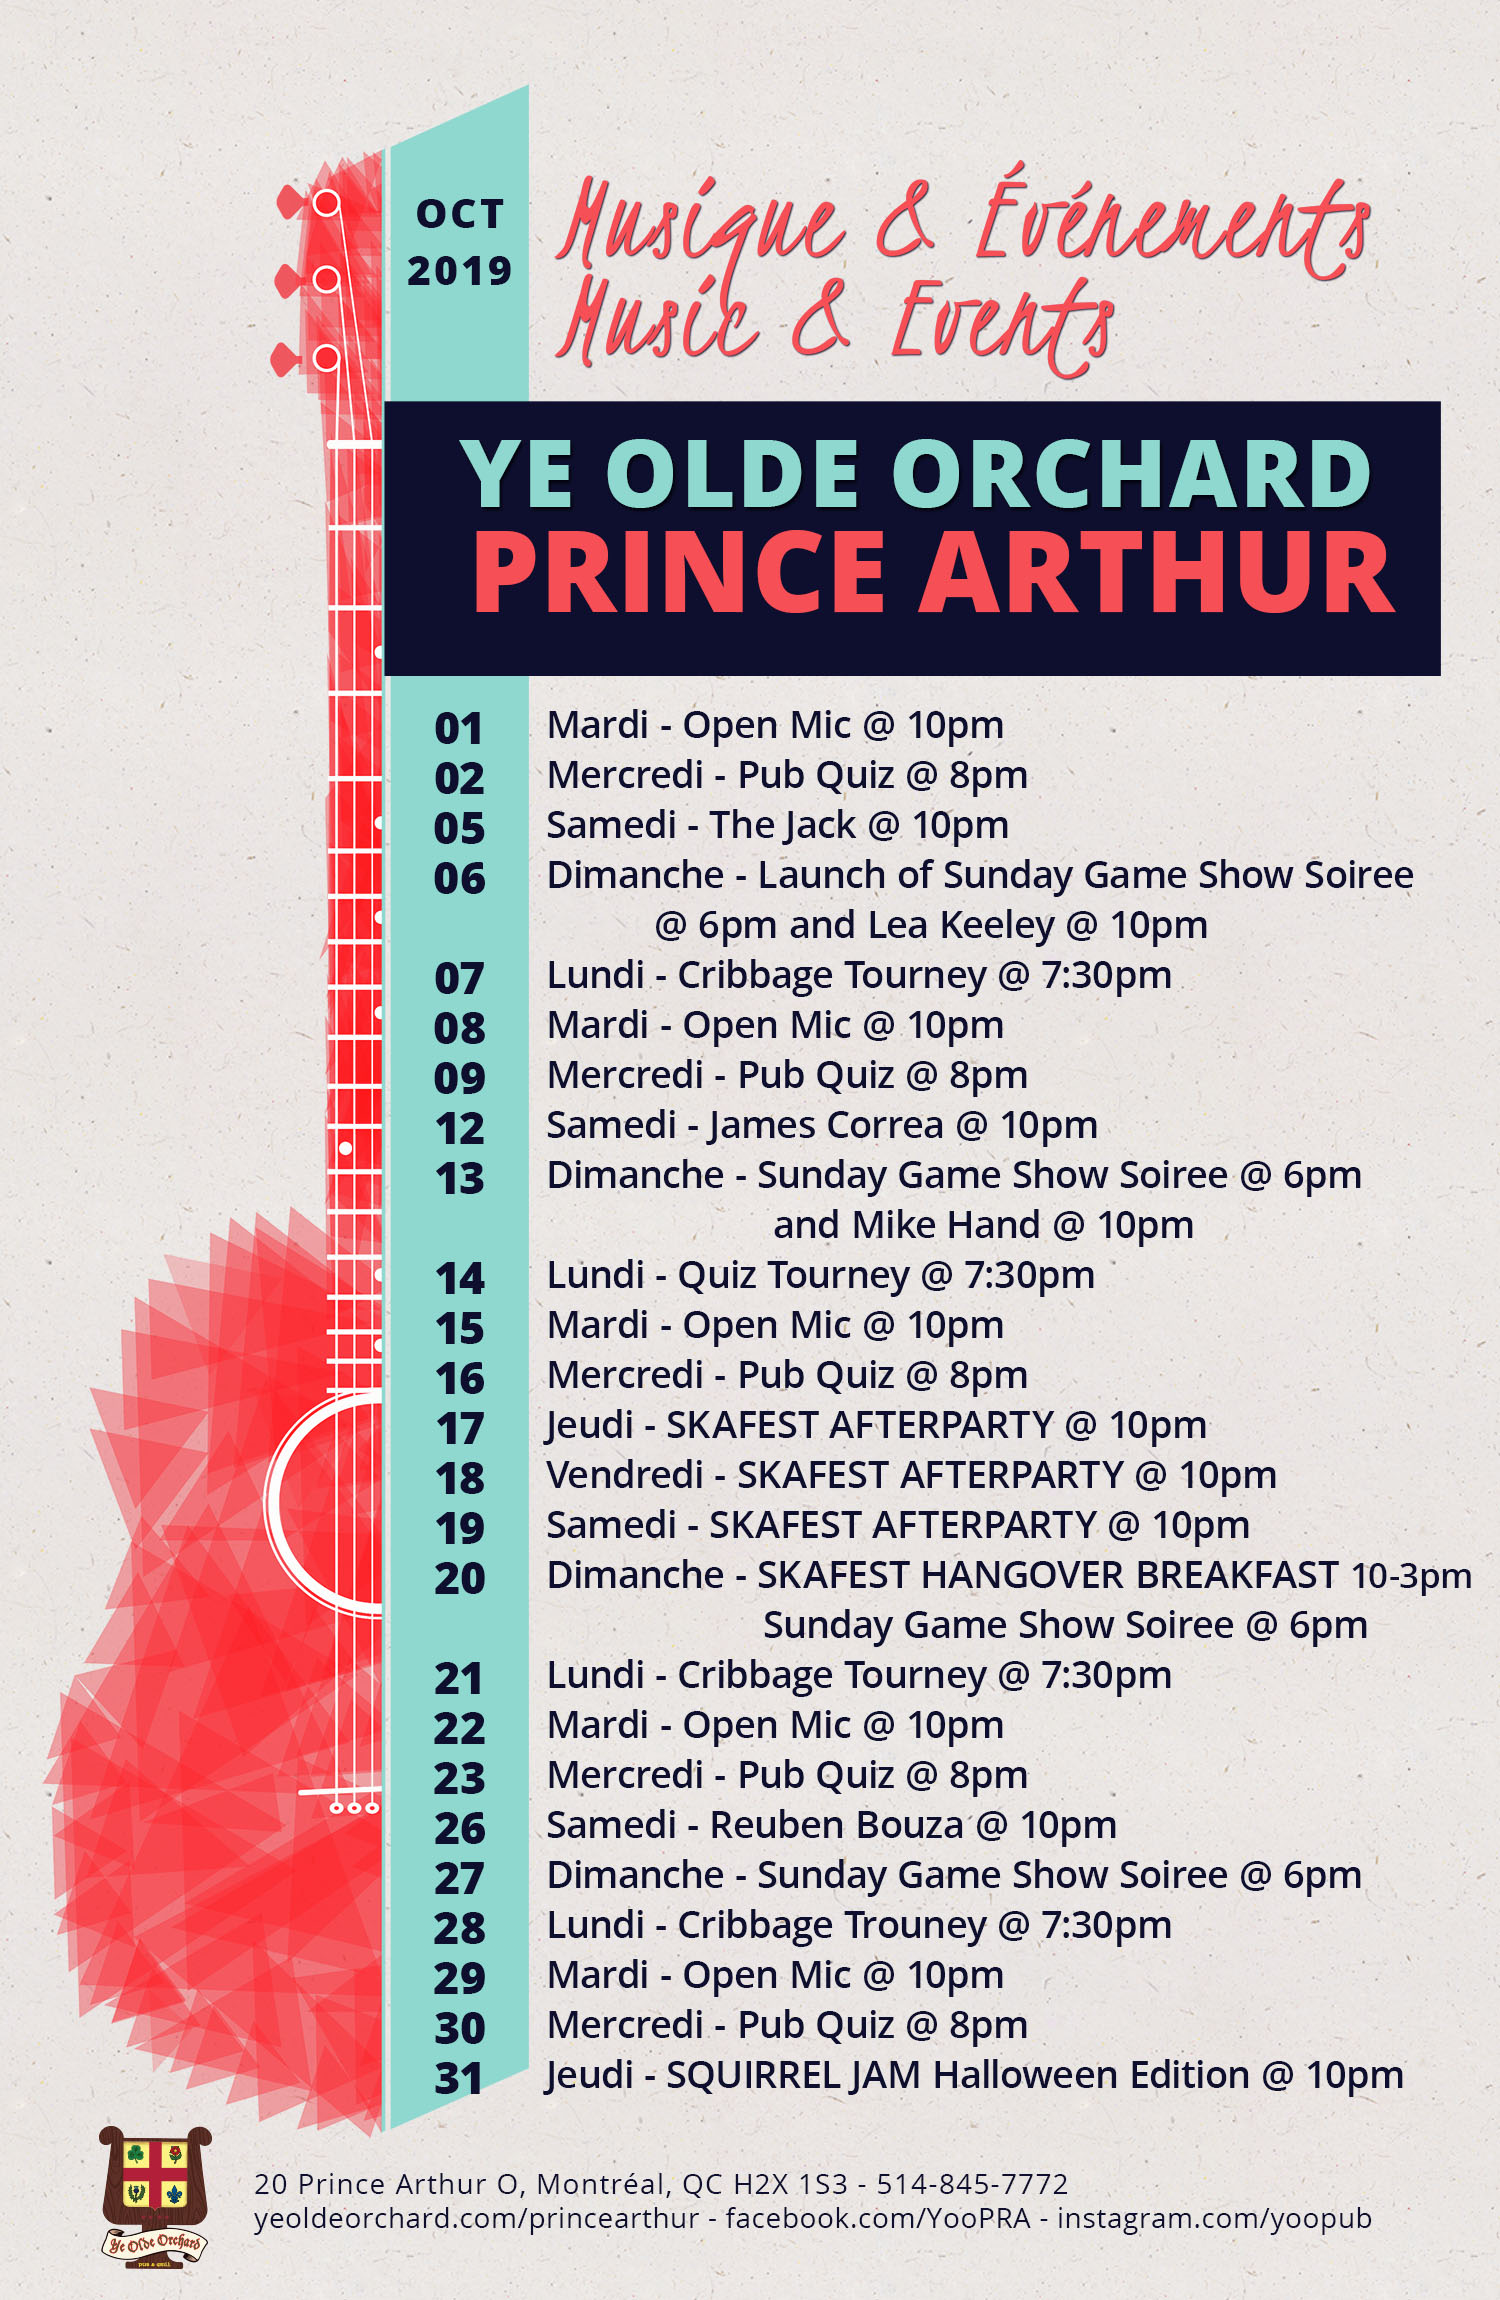 ye-olde-orchard-pub-music-and-events-calendar-prince-arthur-OCT-WEB